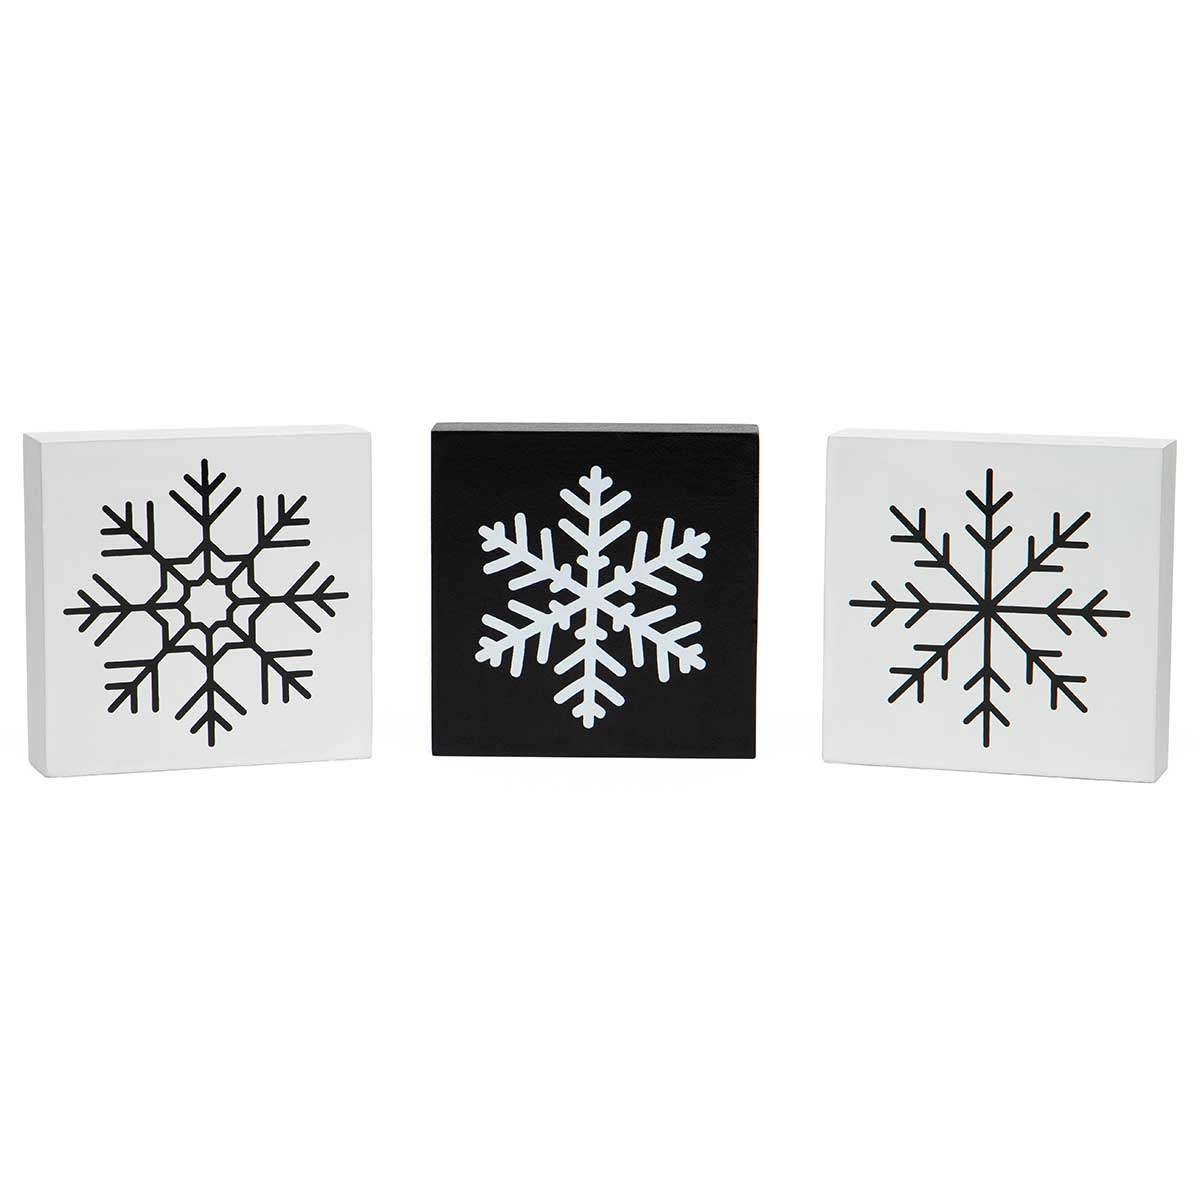 SNOWFLAKE SQUARE WOOD BLOCK SIT-A-BOUT BLACK/WHITE 3 ASSORTED